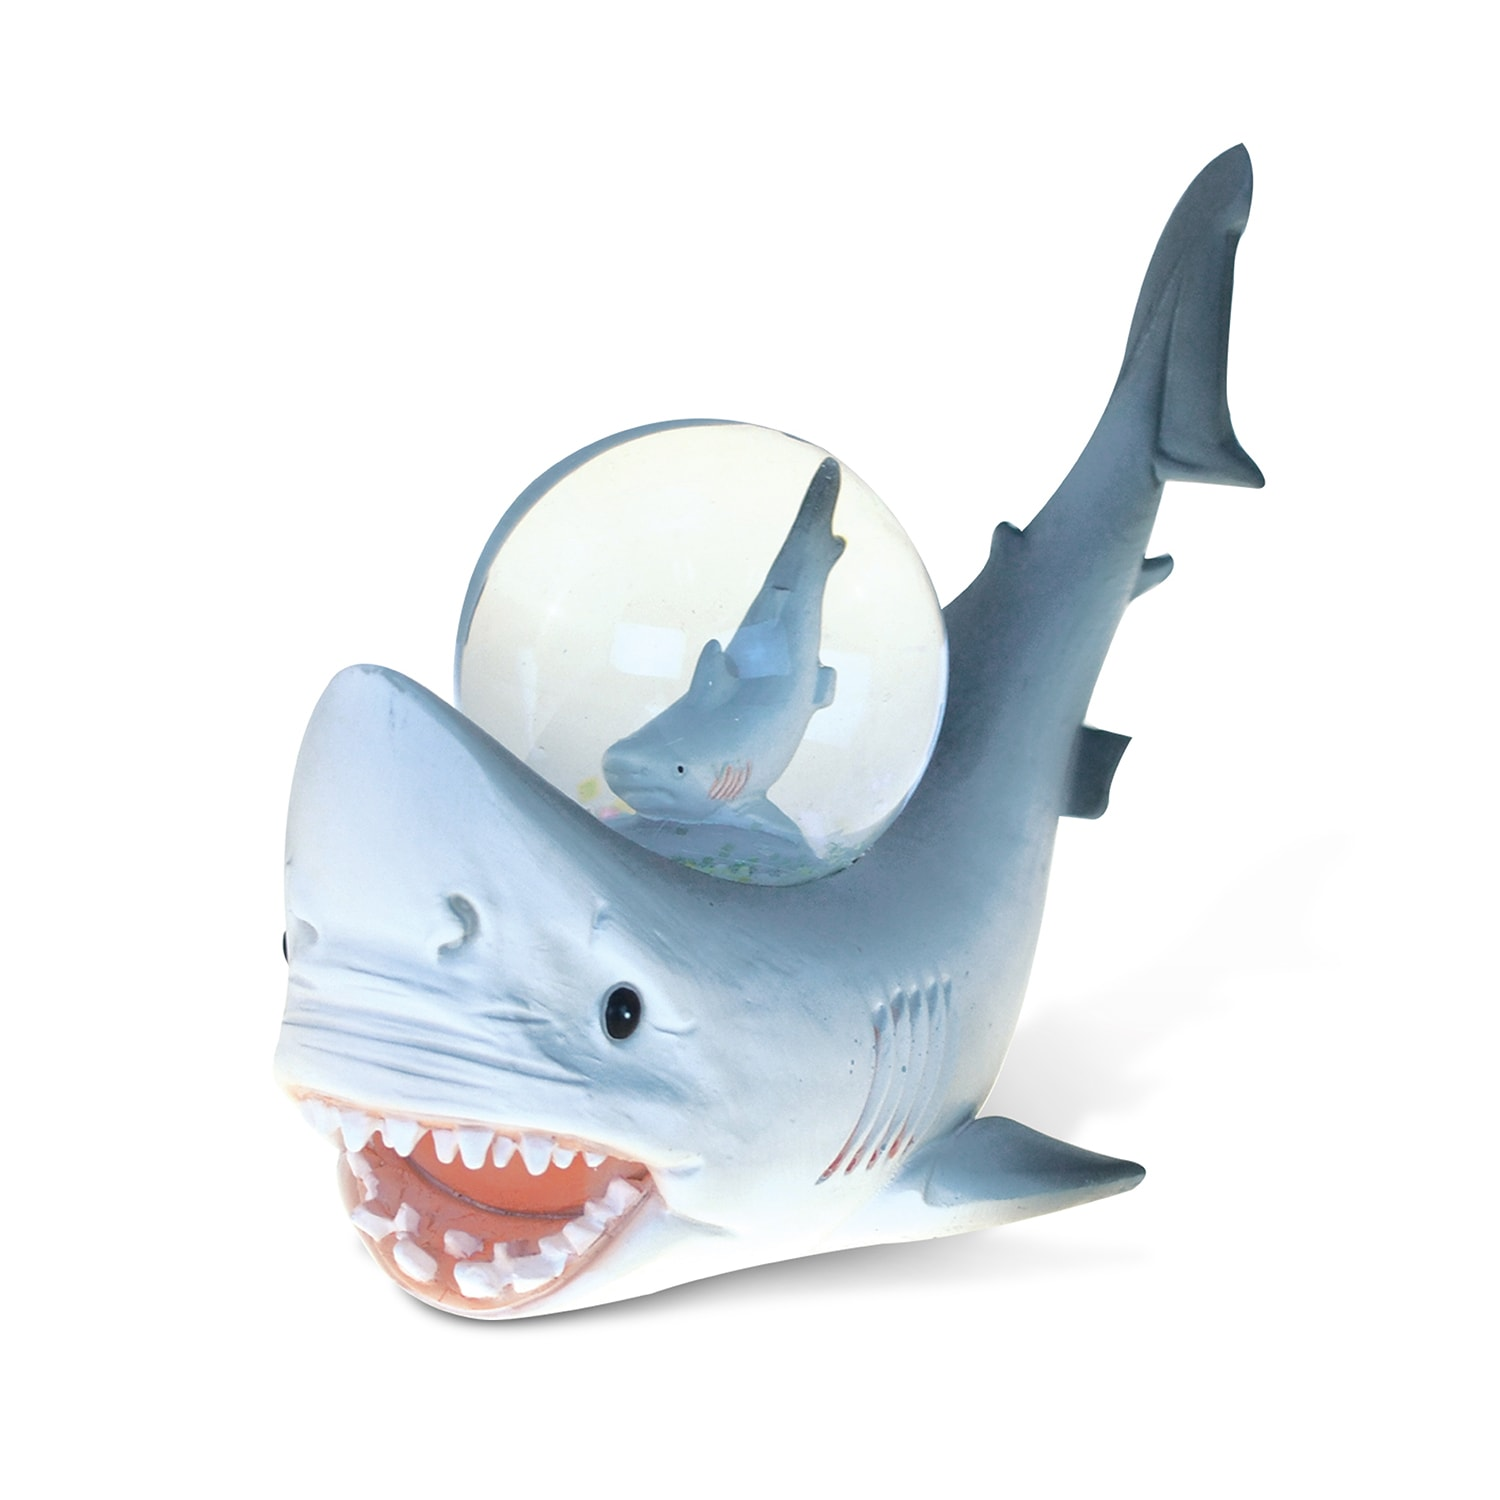 Puzzled Resin and Stone Shark Snow Globe (Ocean Life), Multi